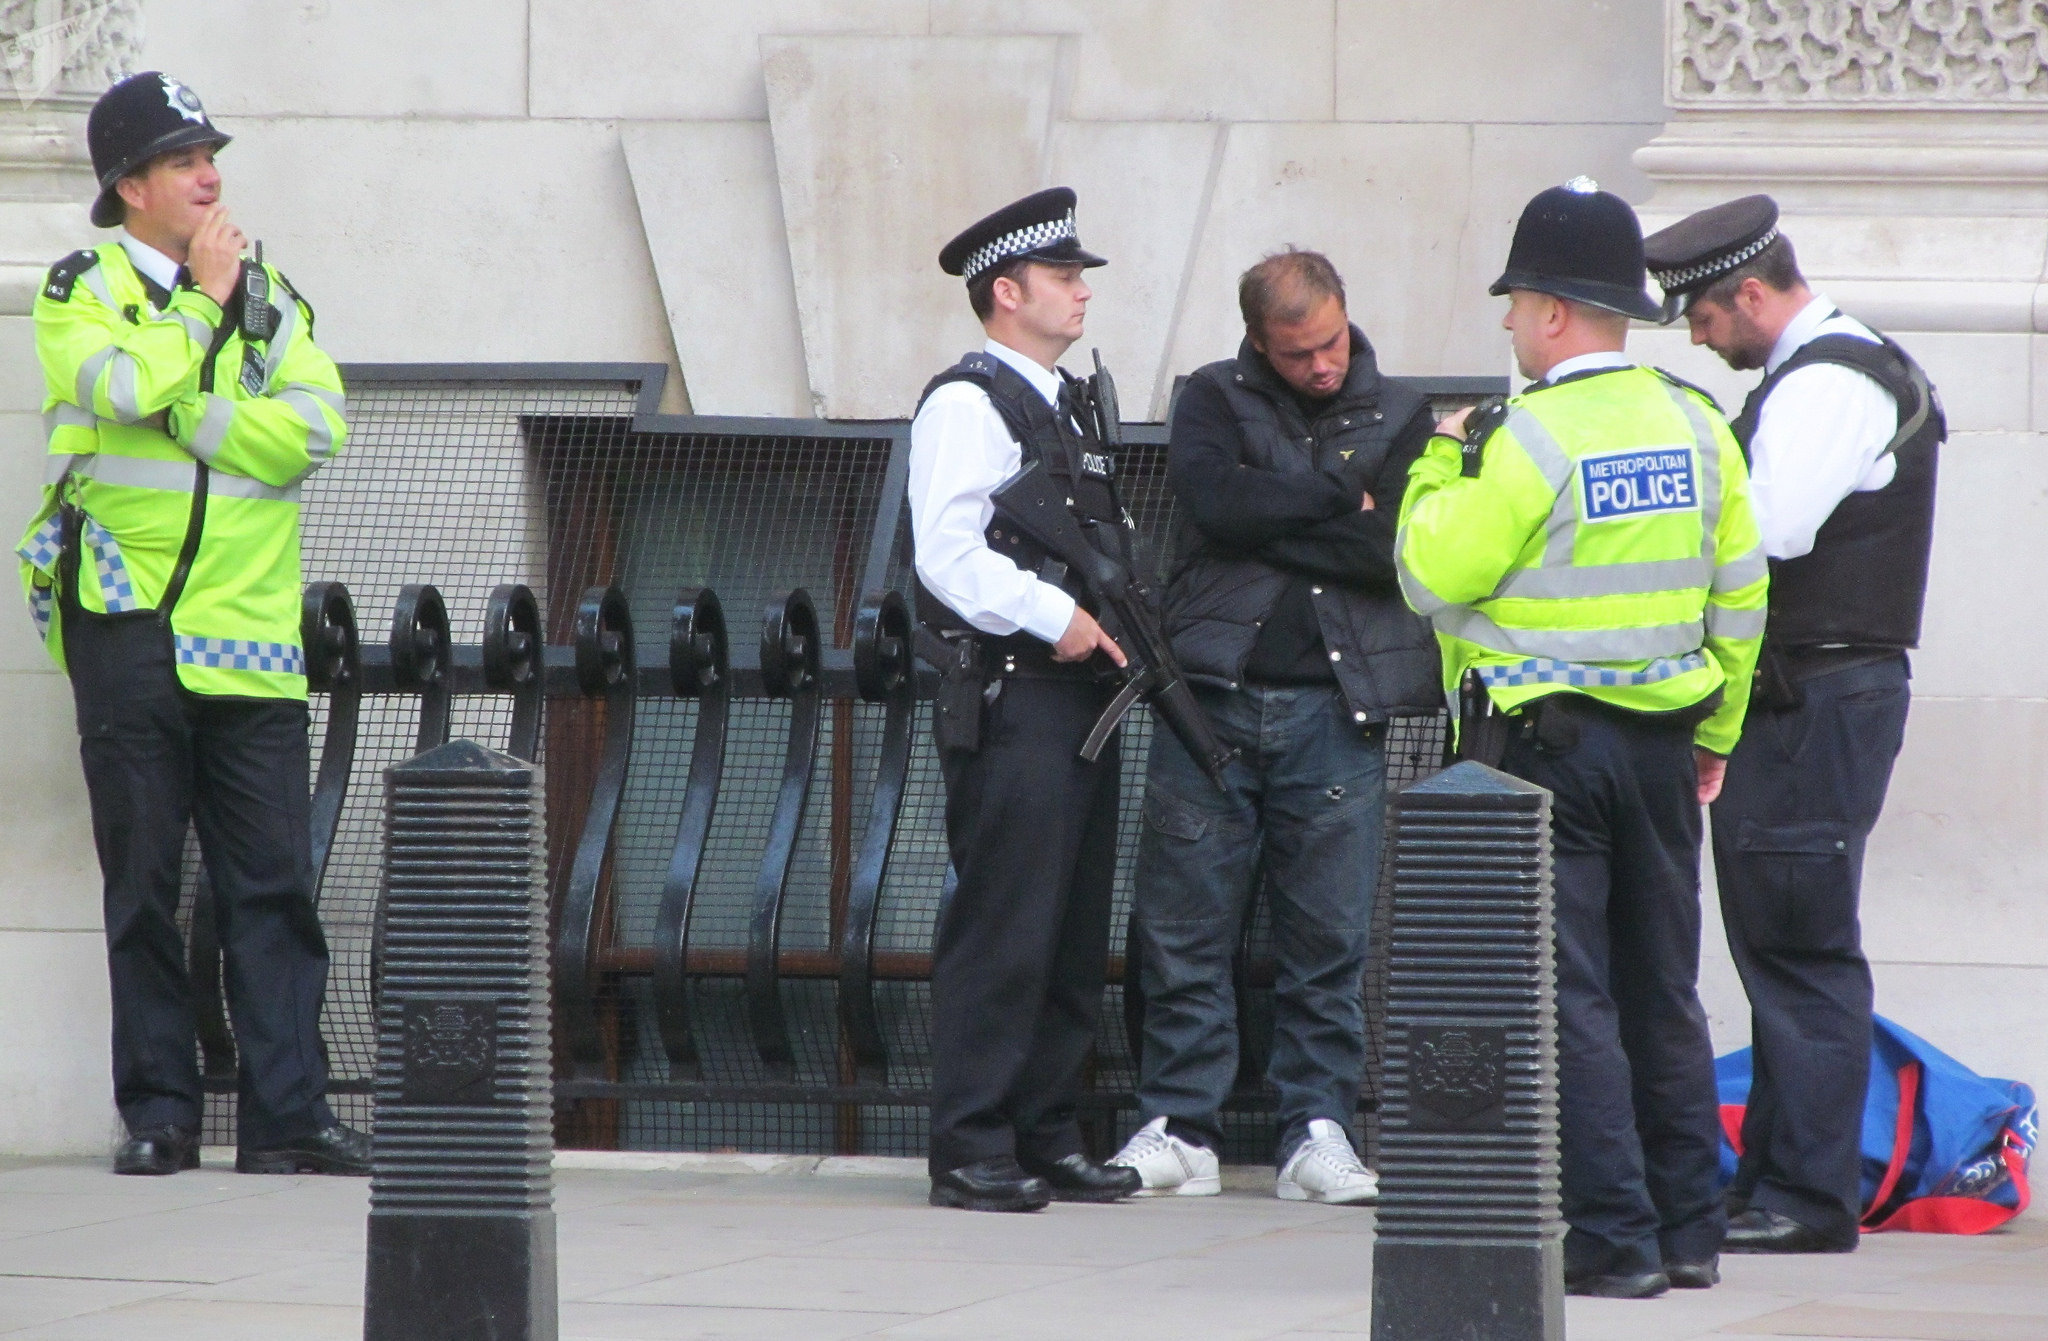 Armed Police arrest the Homeless